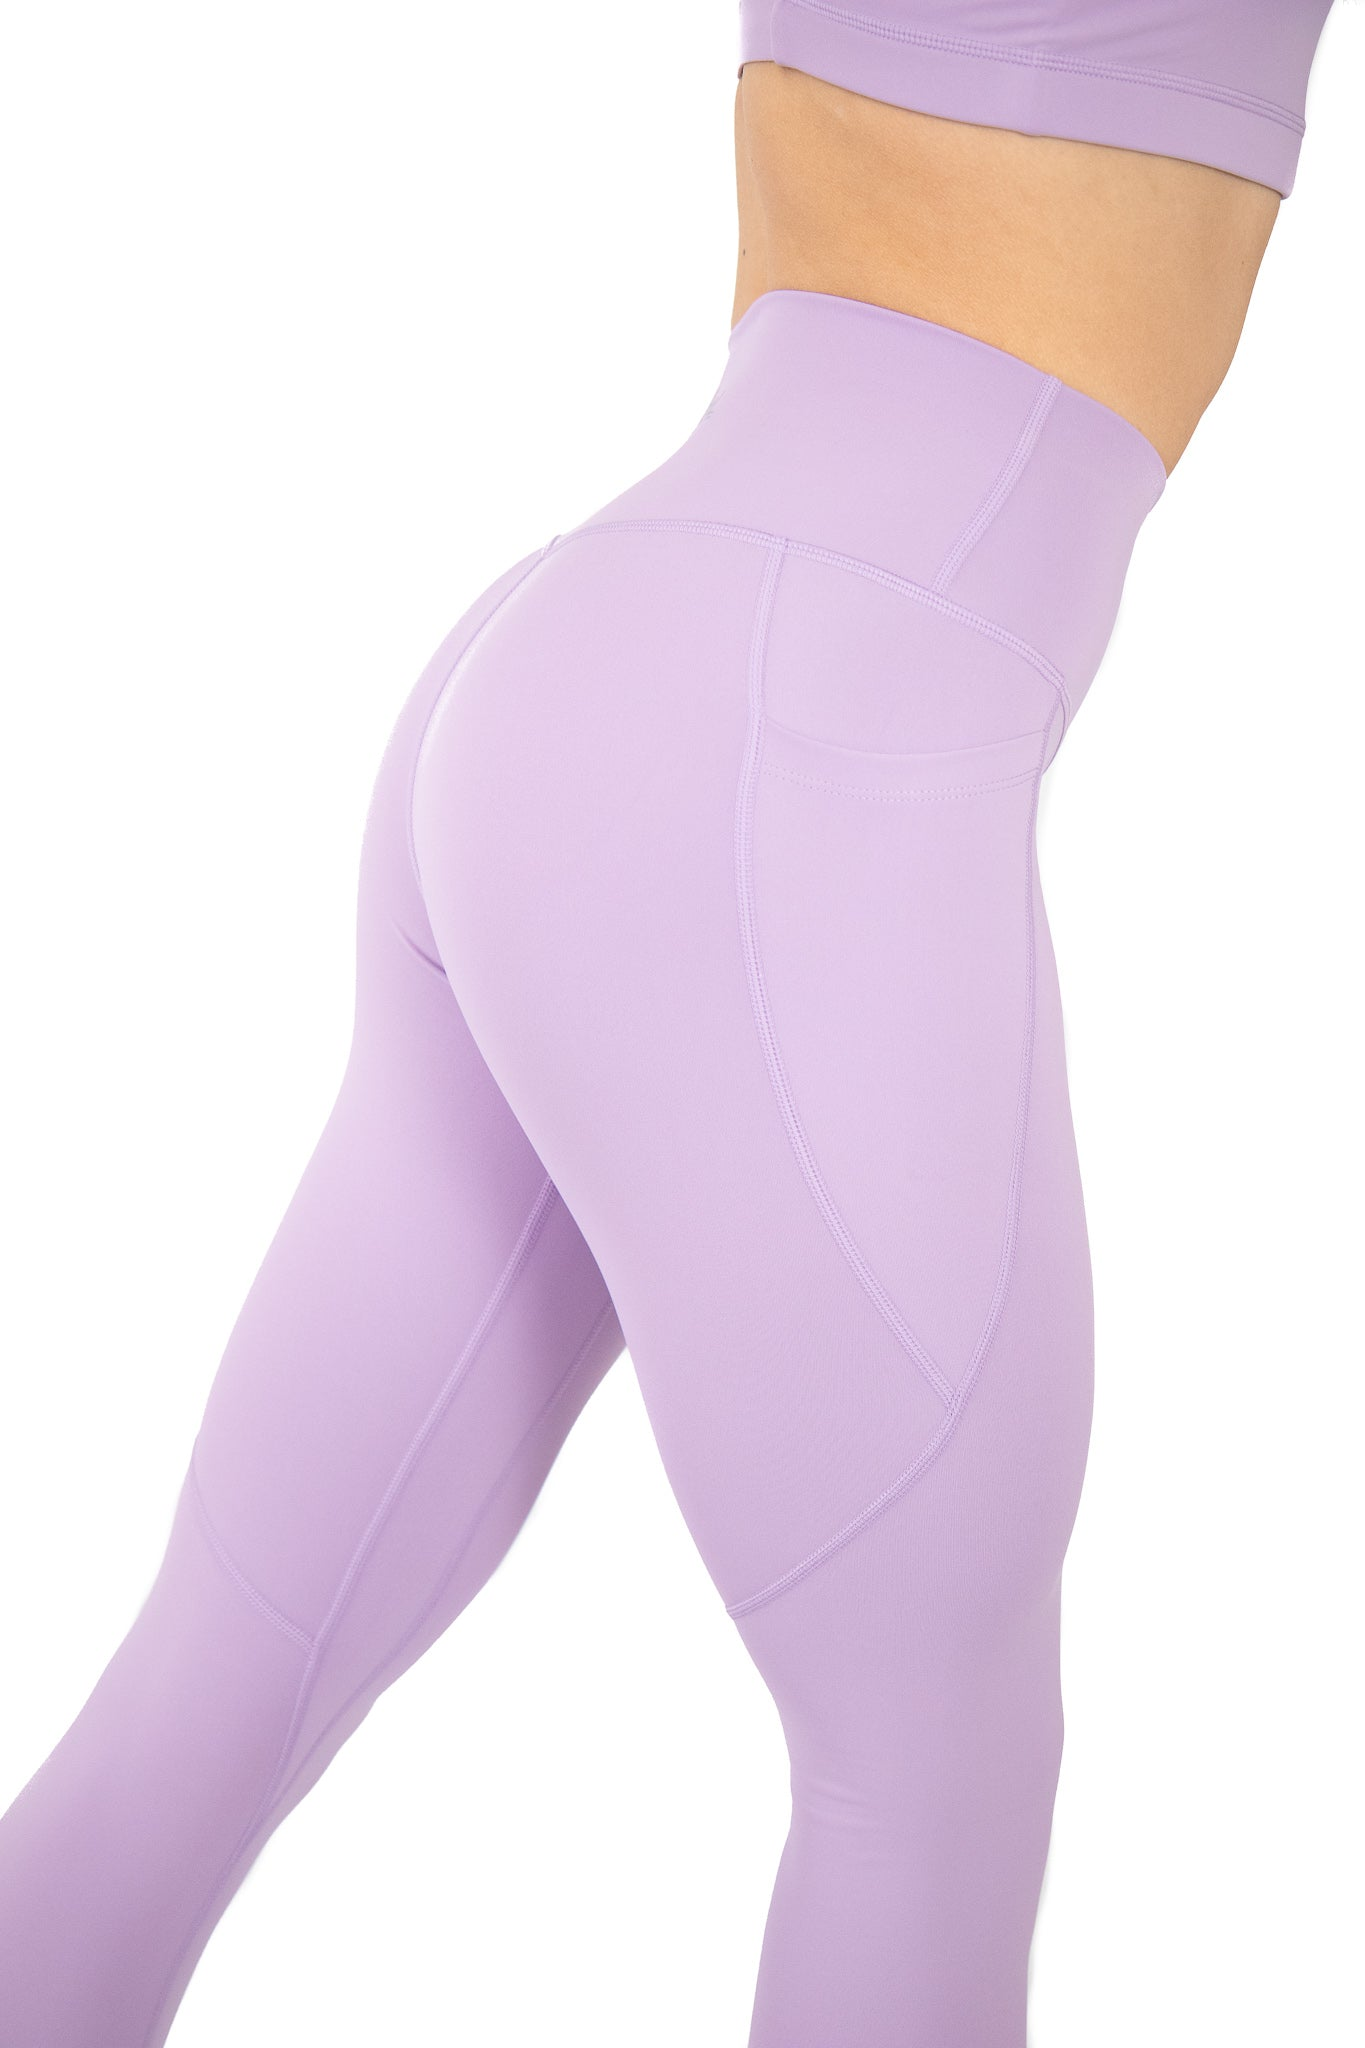 High Waisted Pocket Leggings Athletic Squat Proof Lilac Purple